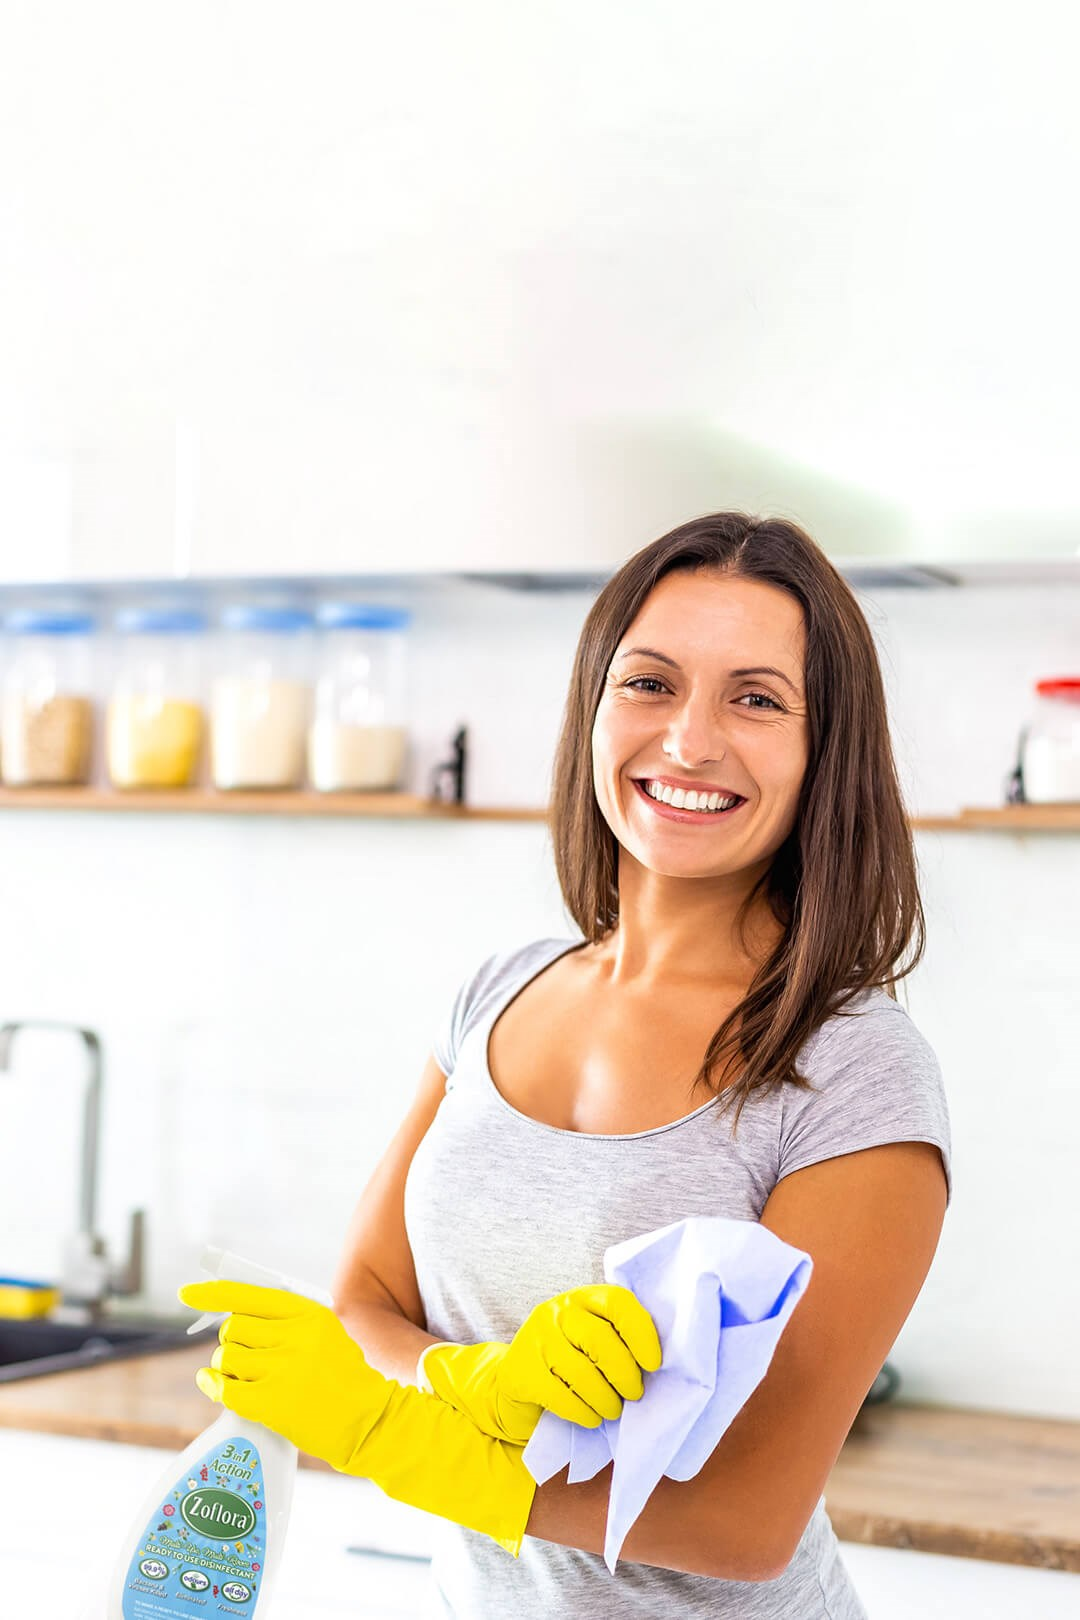 Woman smiling while wearing rubber cleaning gloves